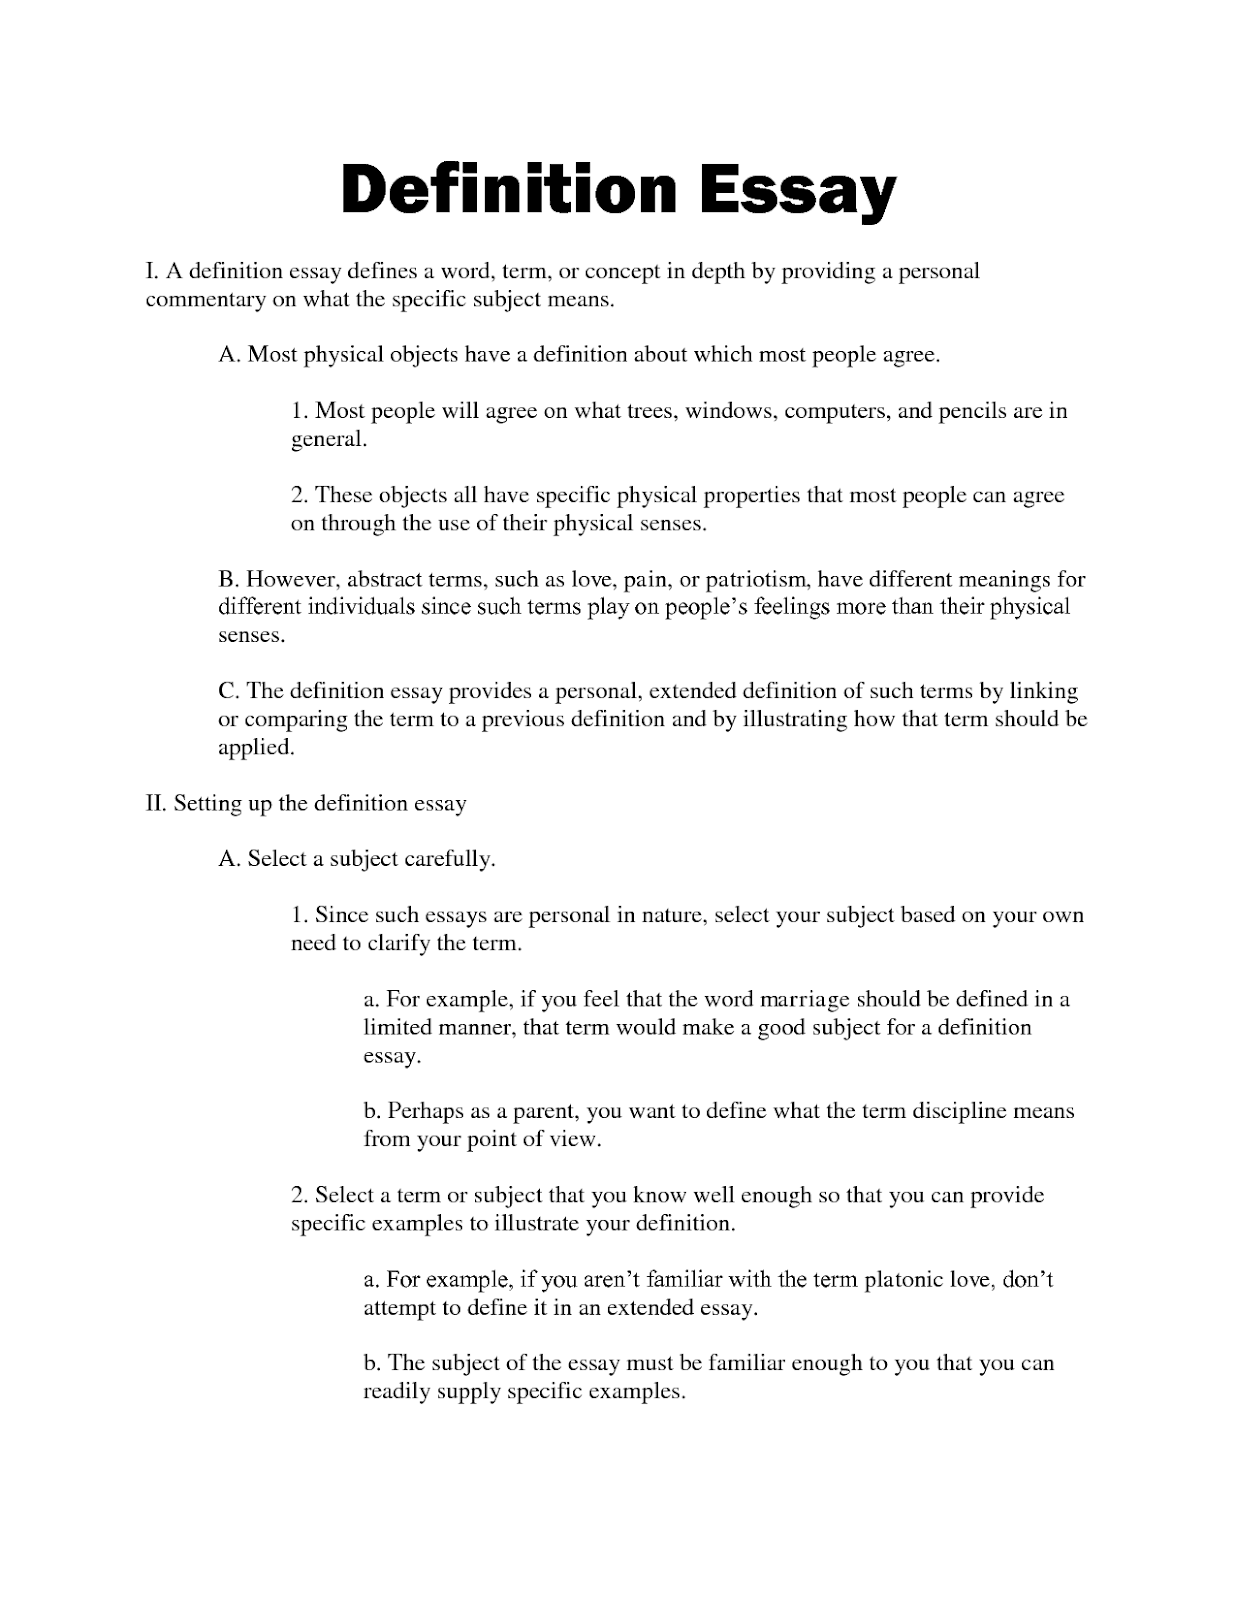 Definition essay on heroism